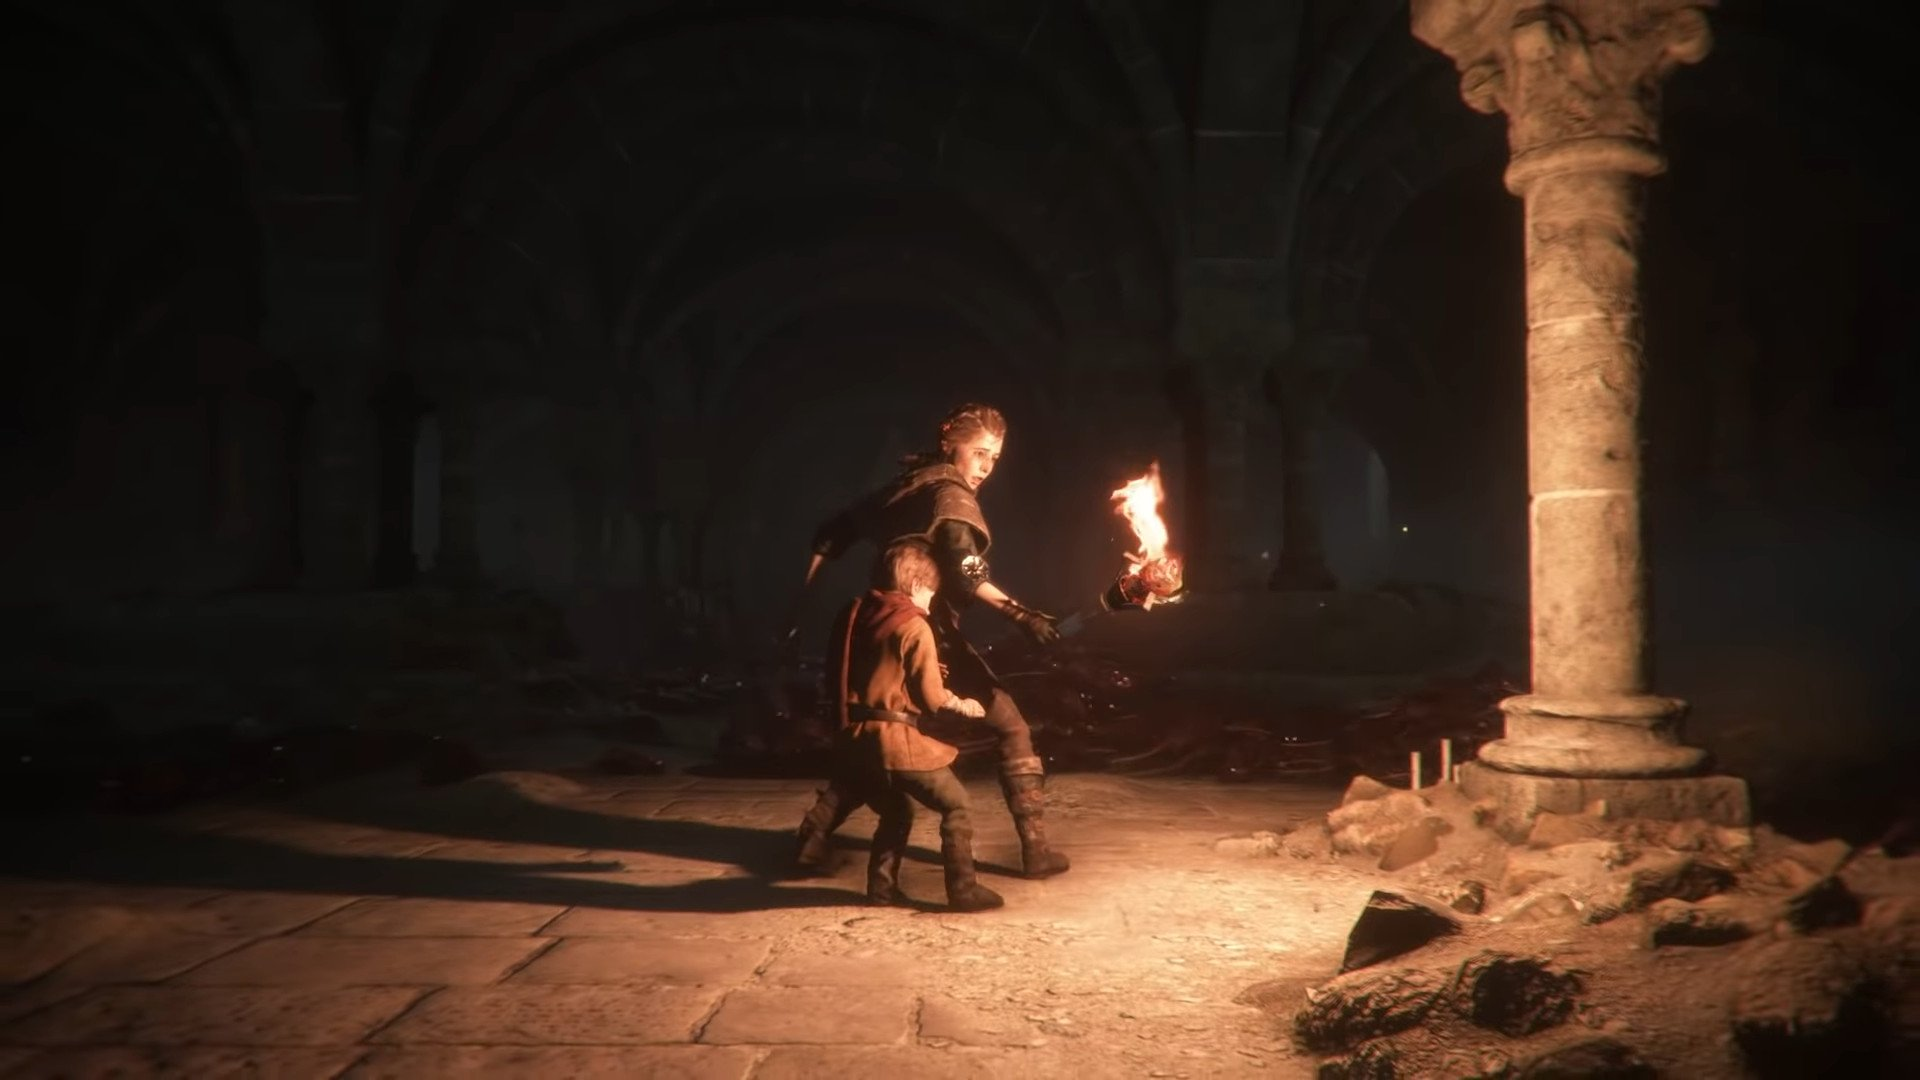 A Plague Tale Innocence Overview Gameplay Trailer Breaks Down The